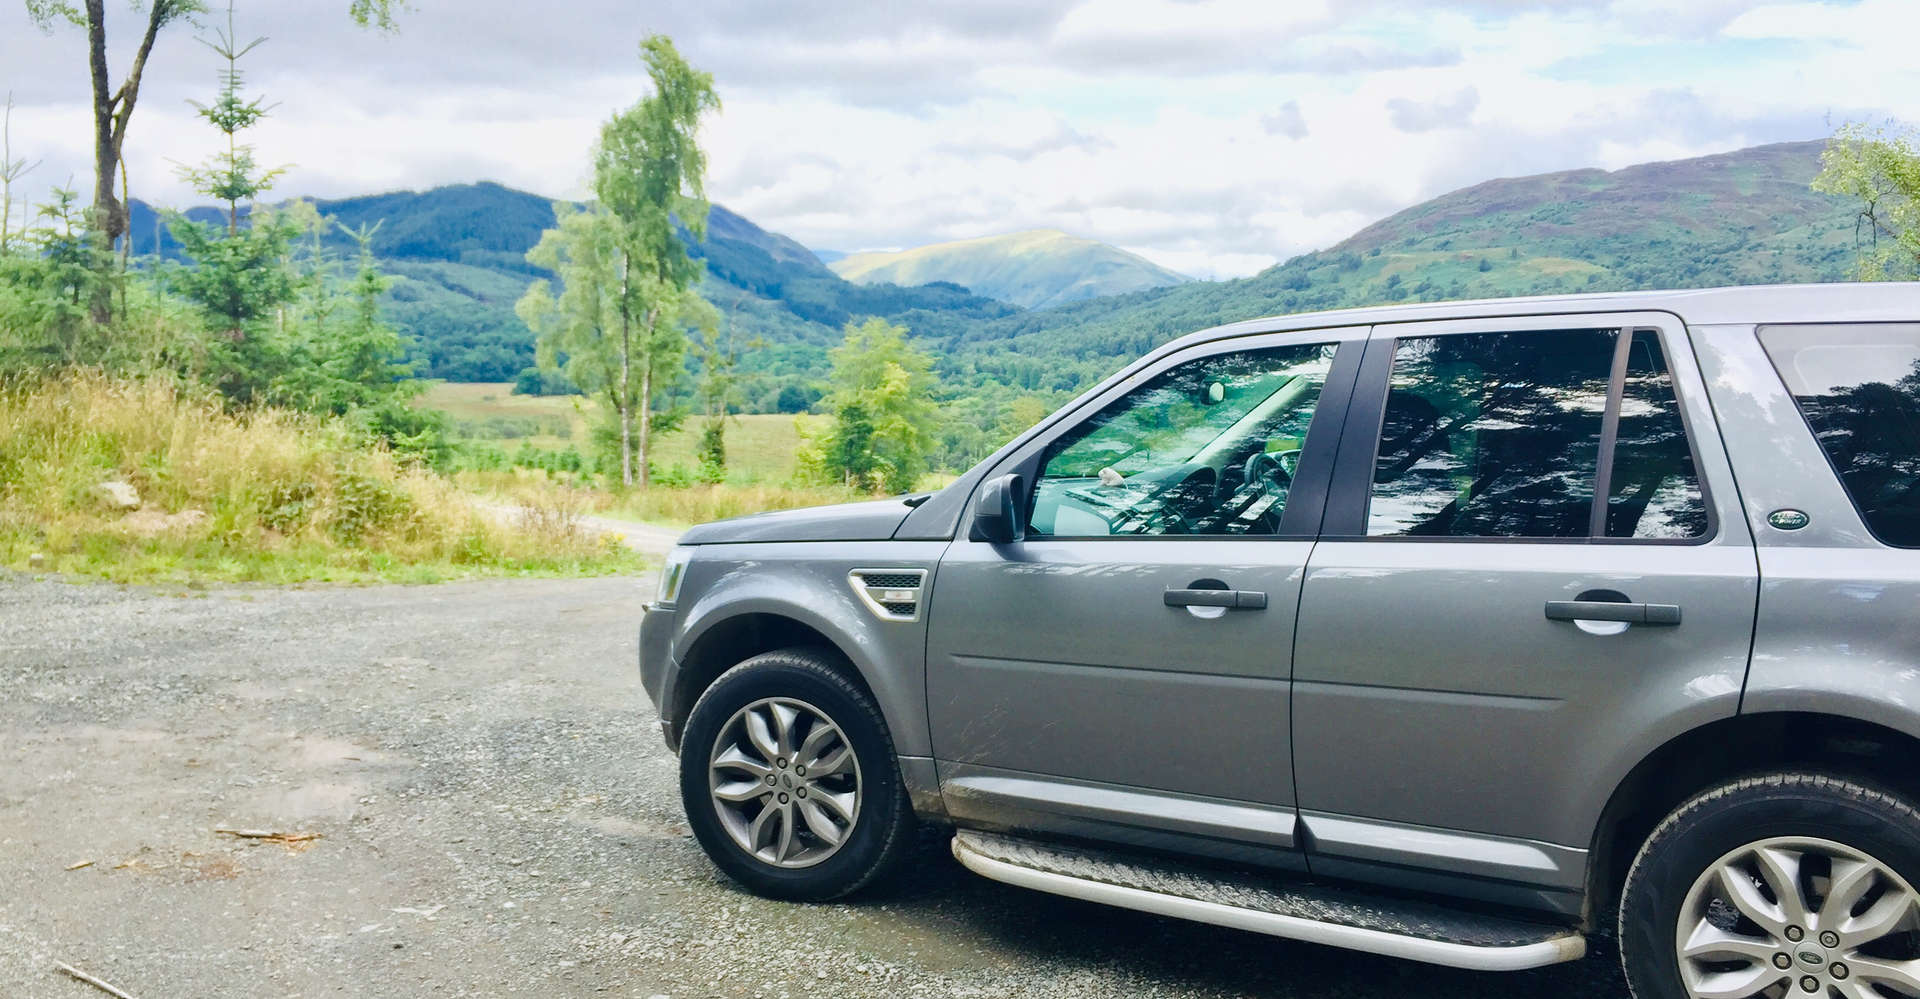 luxury private vehicle off road in scotland during tour